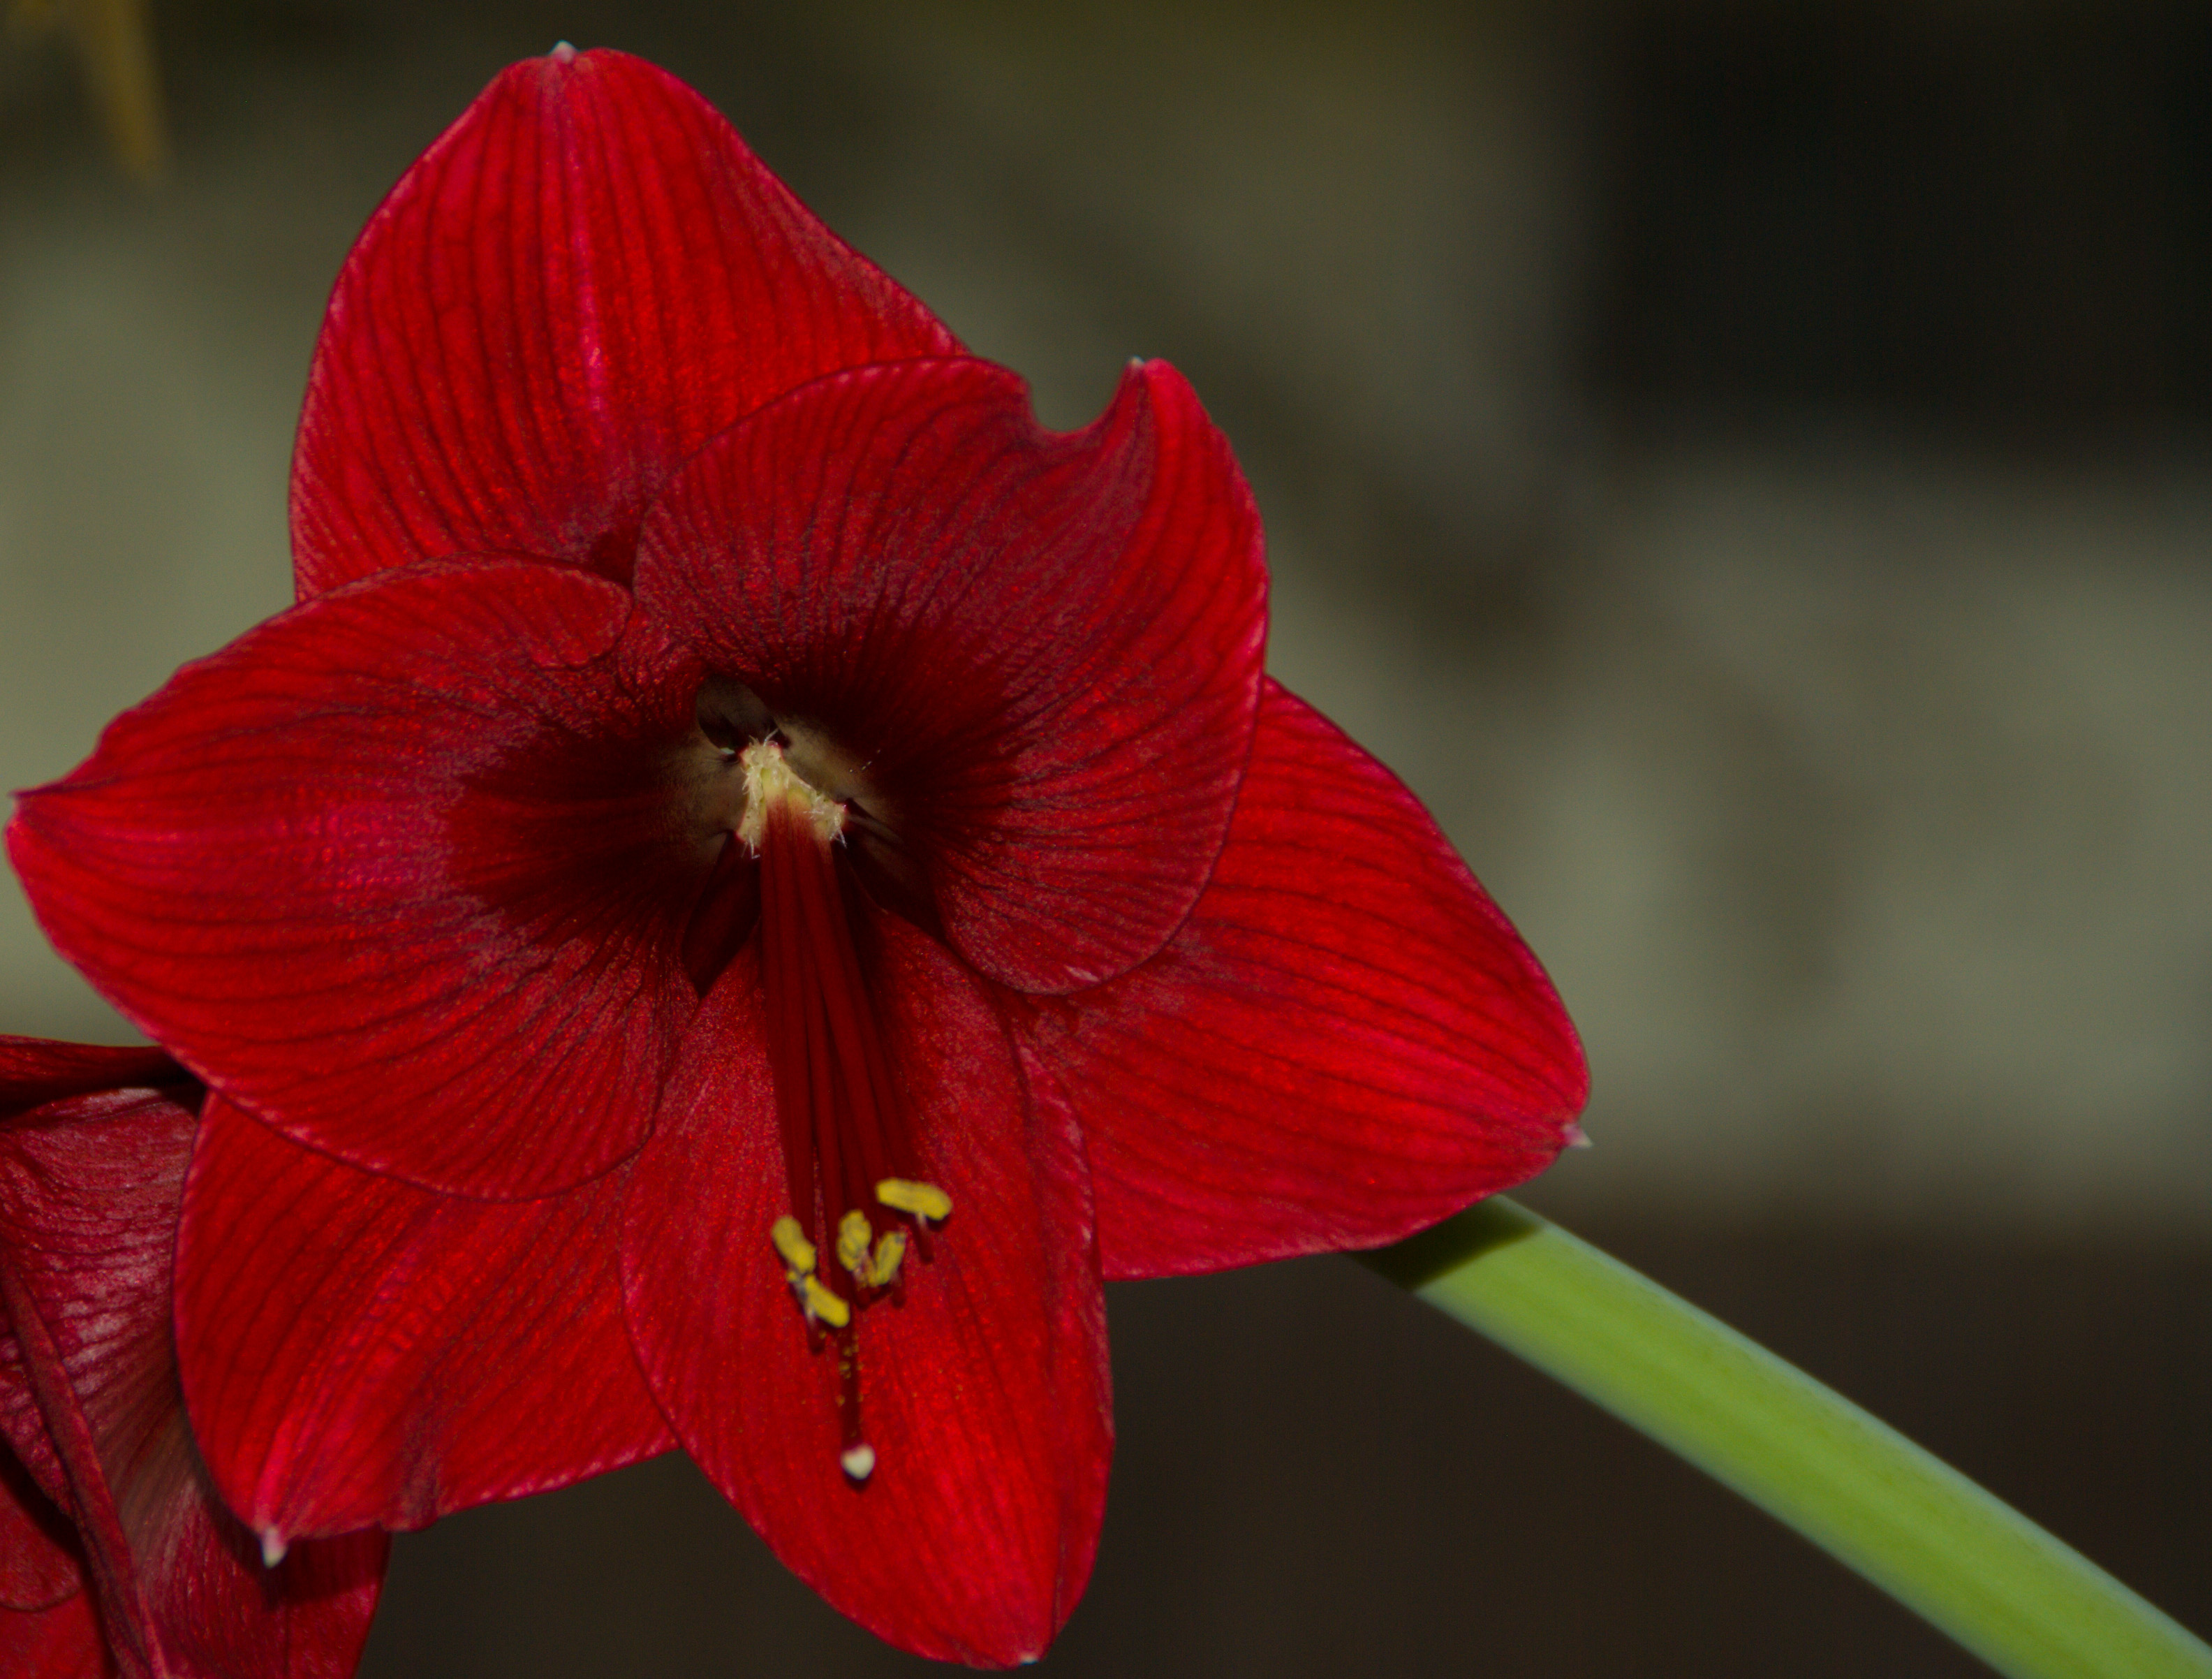 Photo of an amaryllis flower